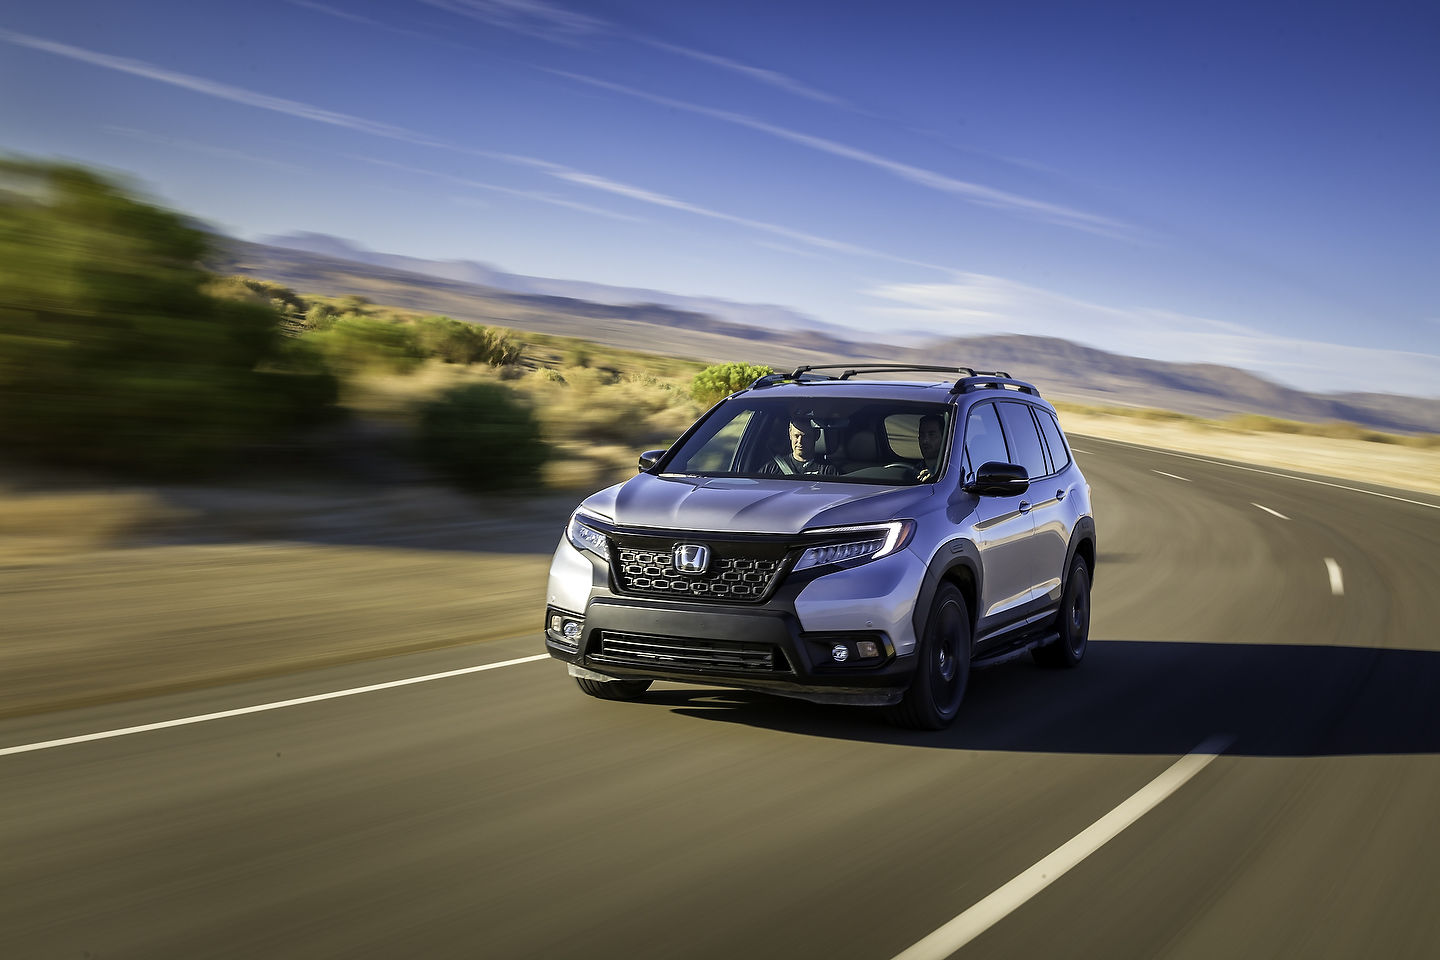 First impressions about the 2019 Honda Passport